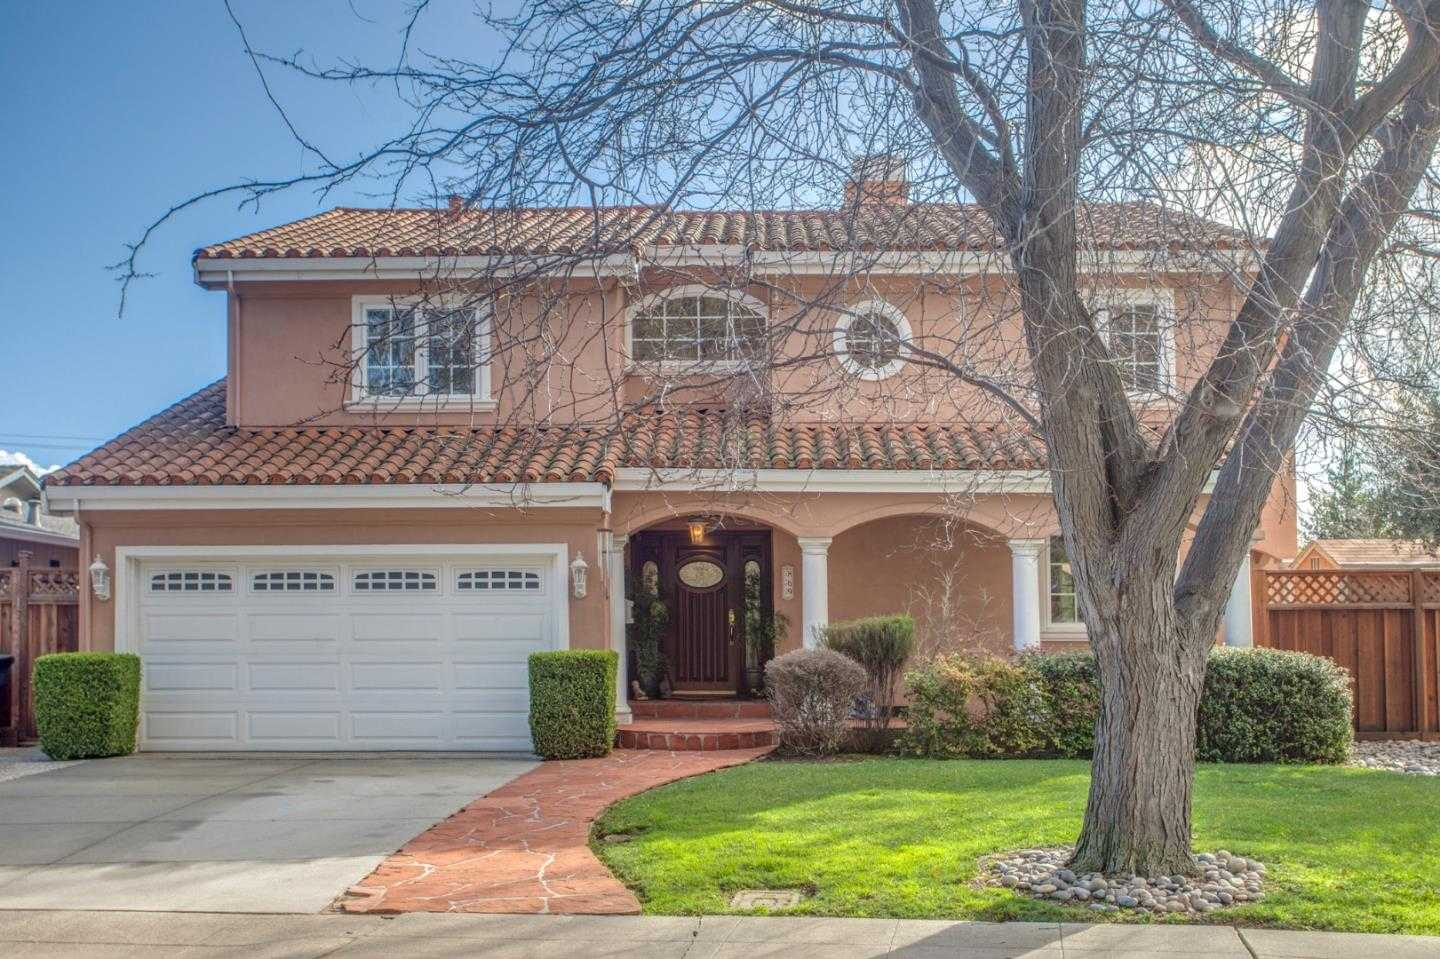 $2,799,000 - 5Br/3Ba -  for Sale in Mountain View